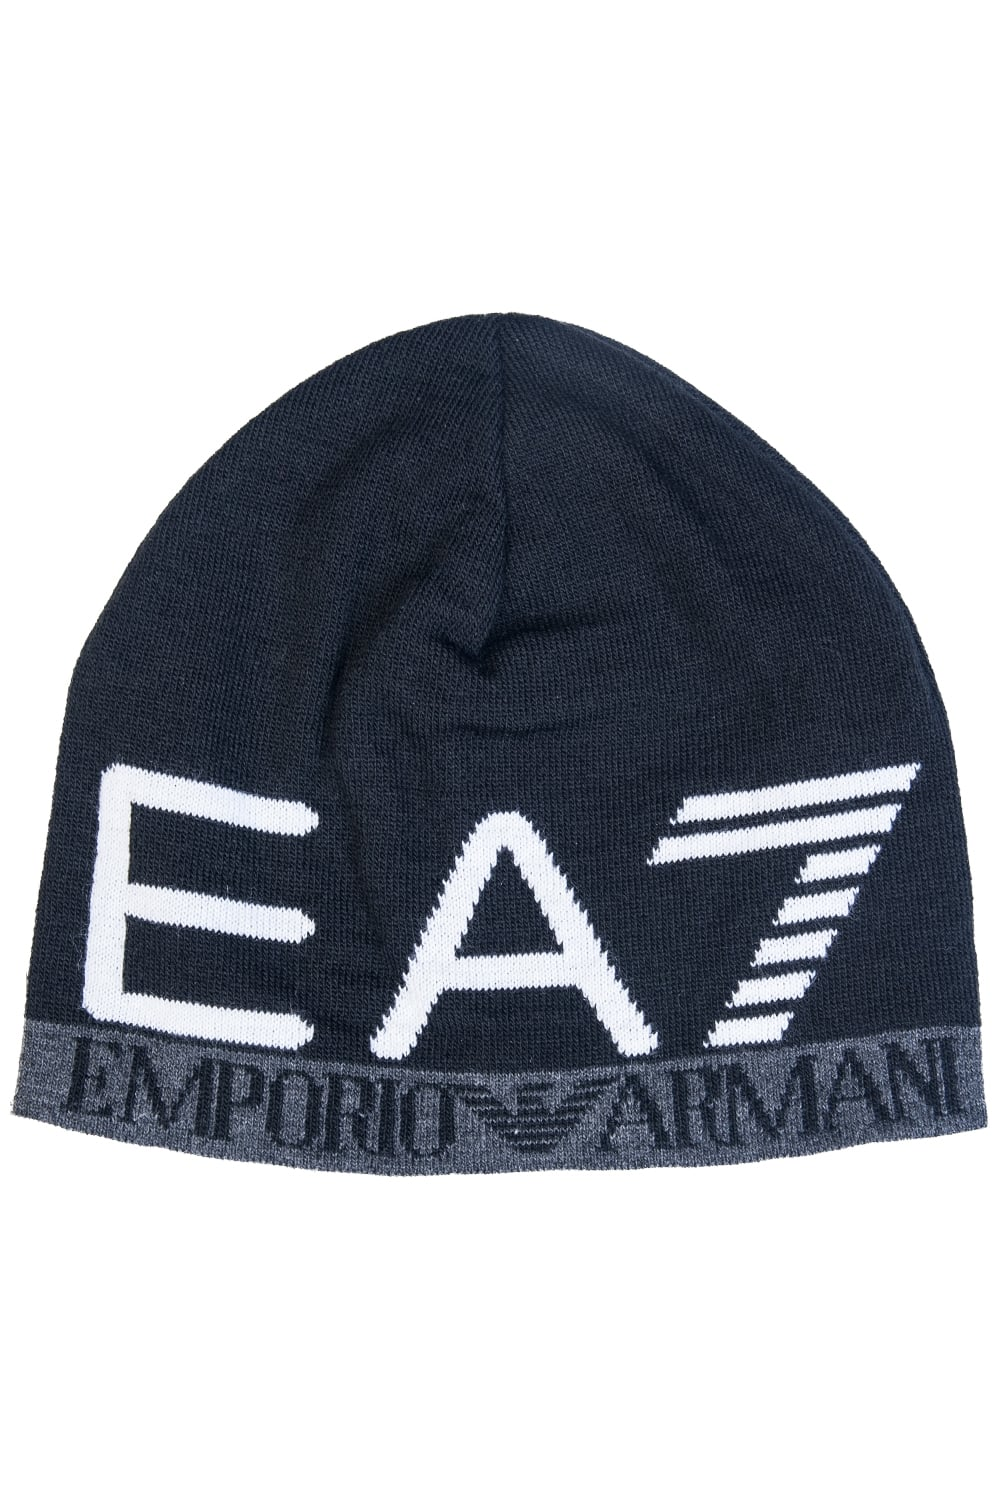 EA7 Emporio Armani Hat 275560 7A393 - Accessories from Sage Clothing UK d6f9cd3cf2f